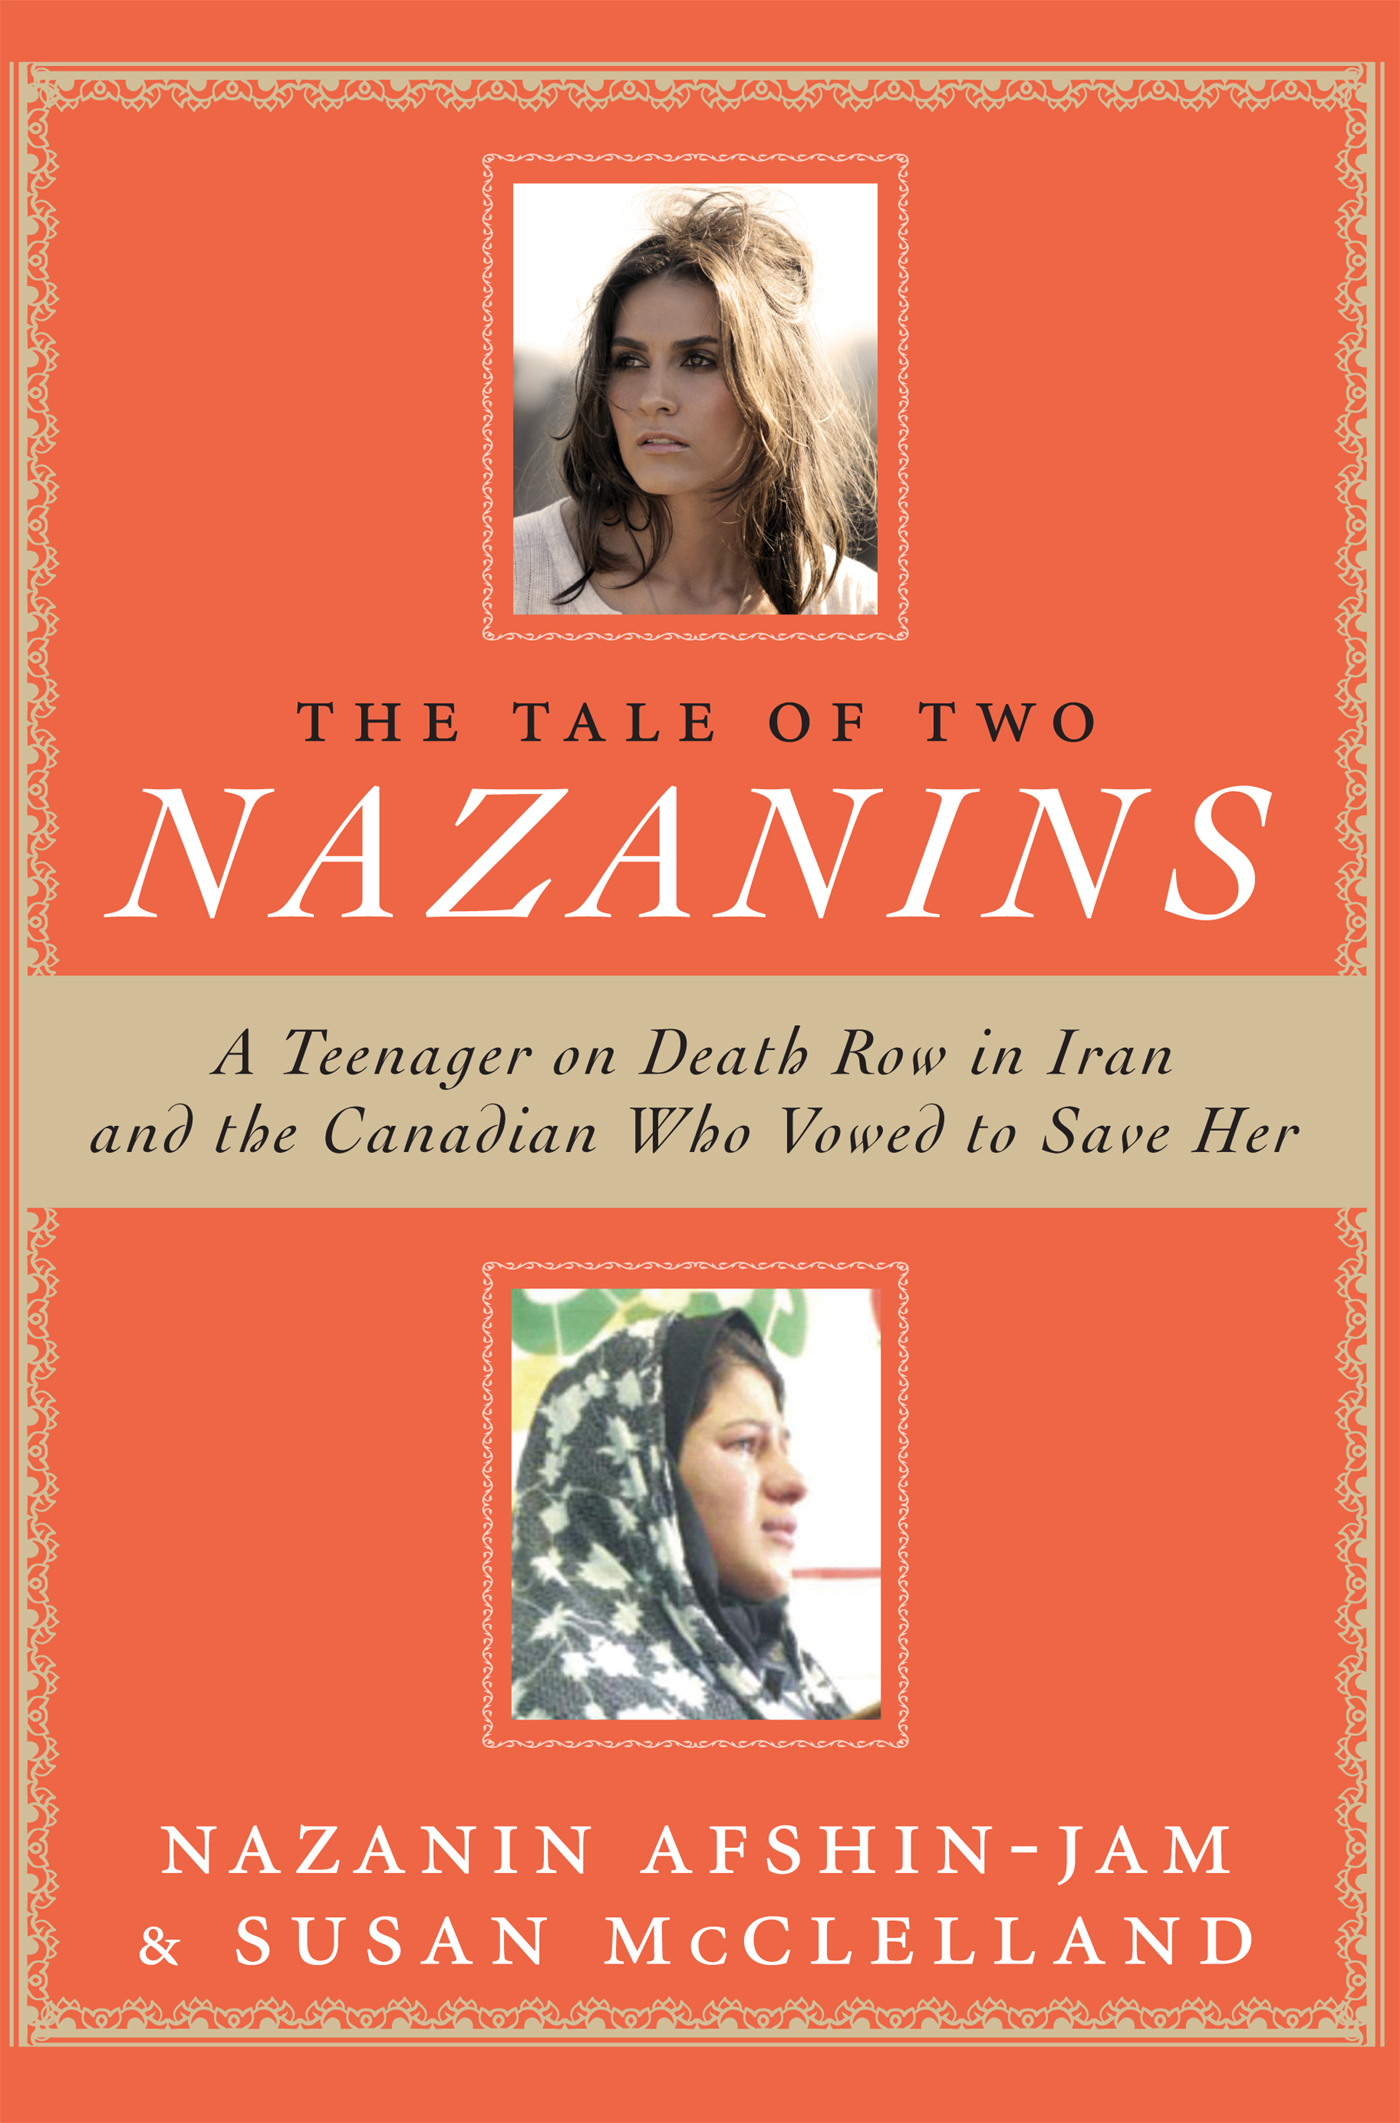 The Tale of Two Nazanins By: Nazanin Afshin-Jam,Susan McClelland